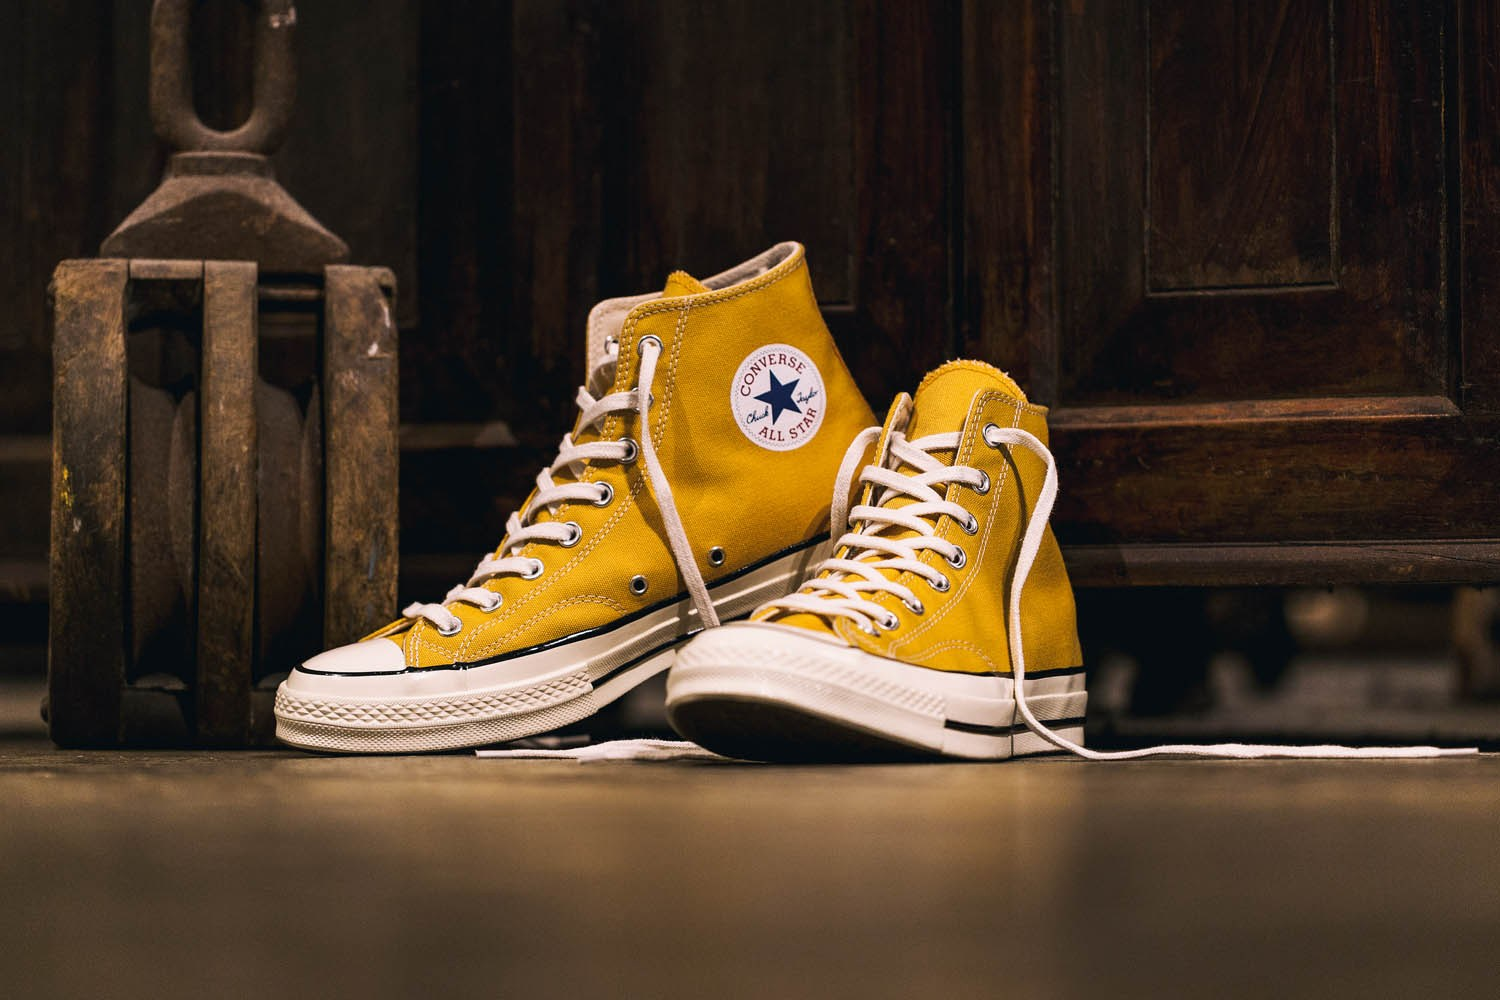 converse-shows-its-colors-with-its-latest-chuck-taylor-all-star-70s-release-7